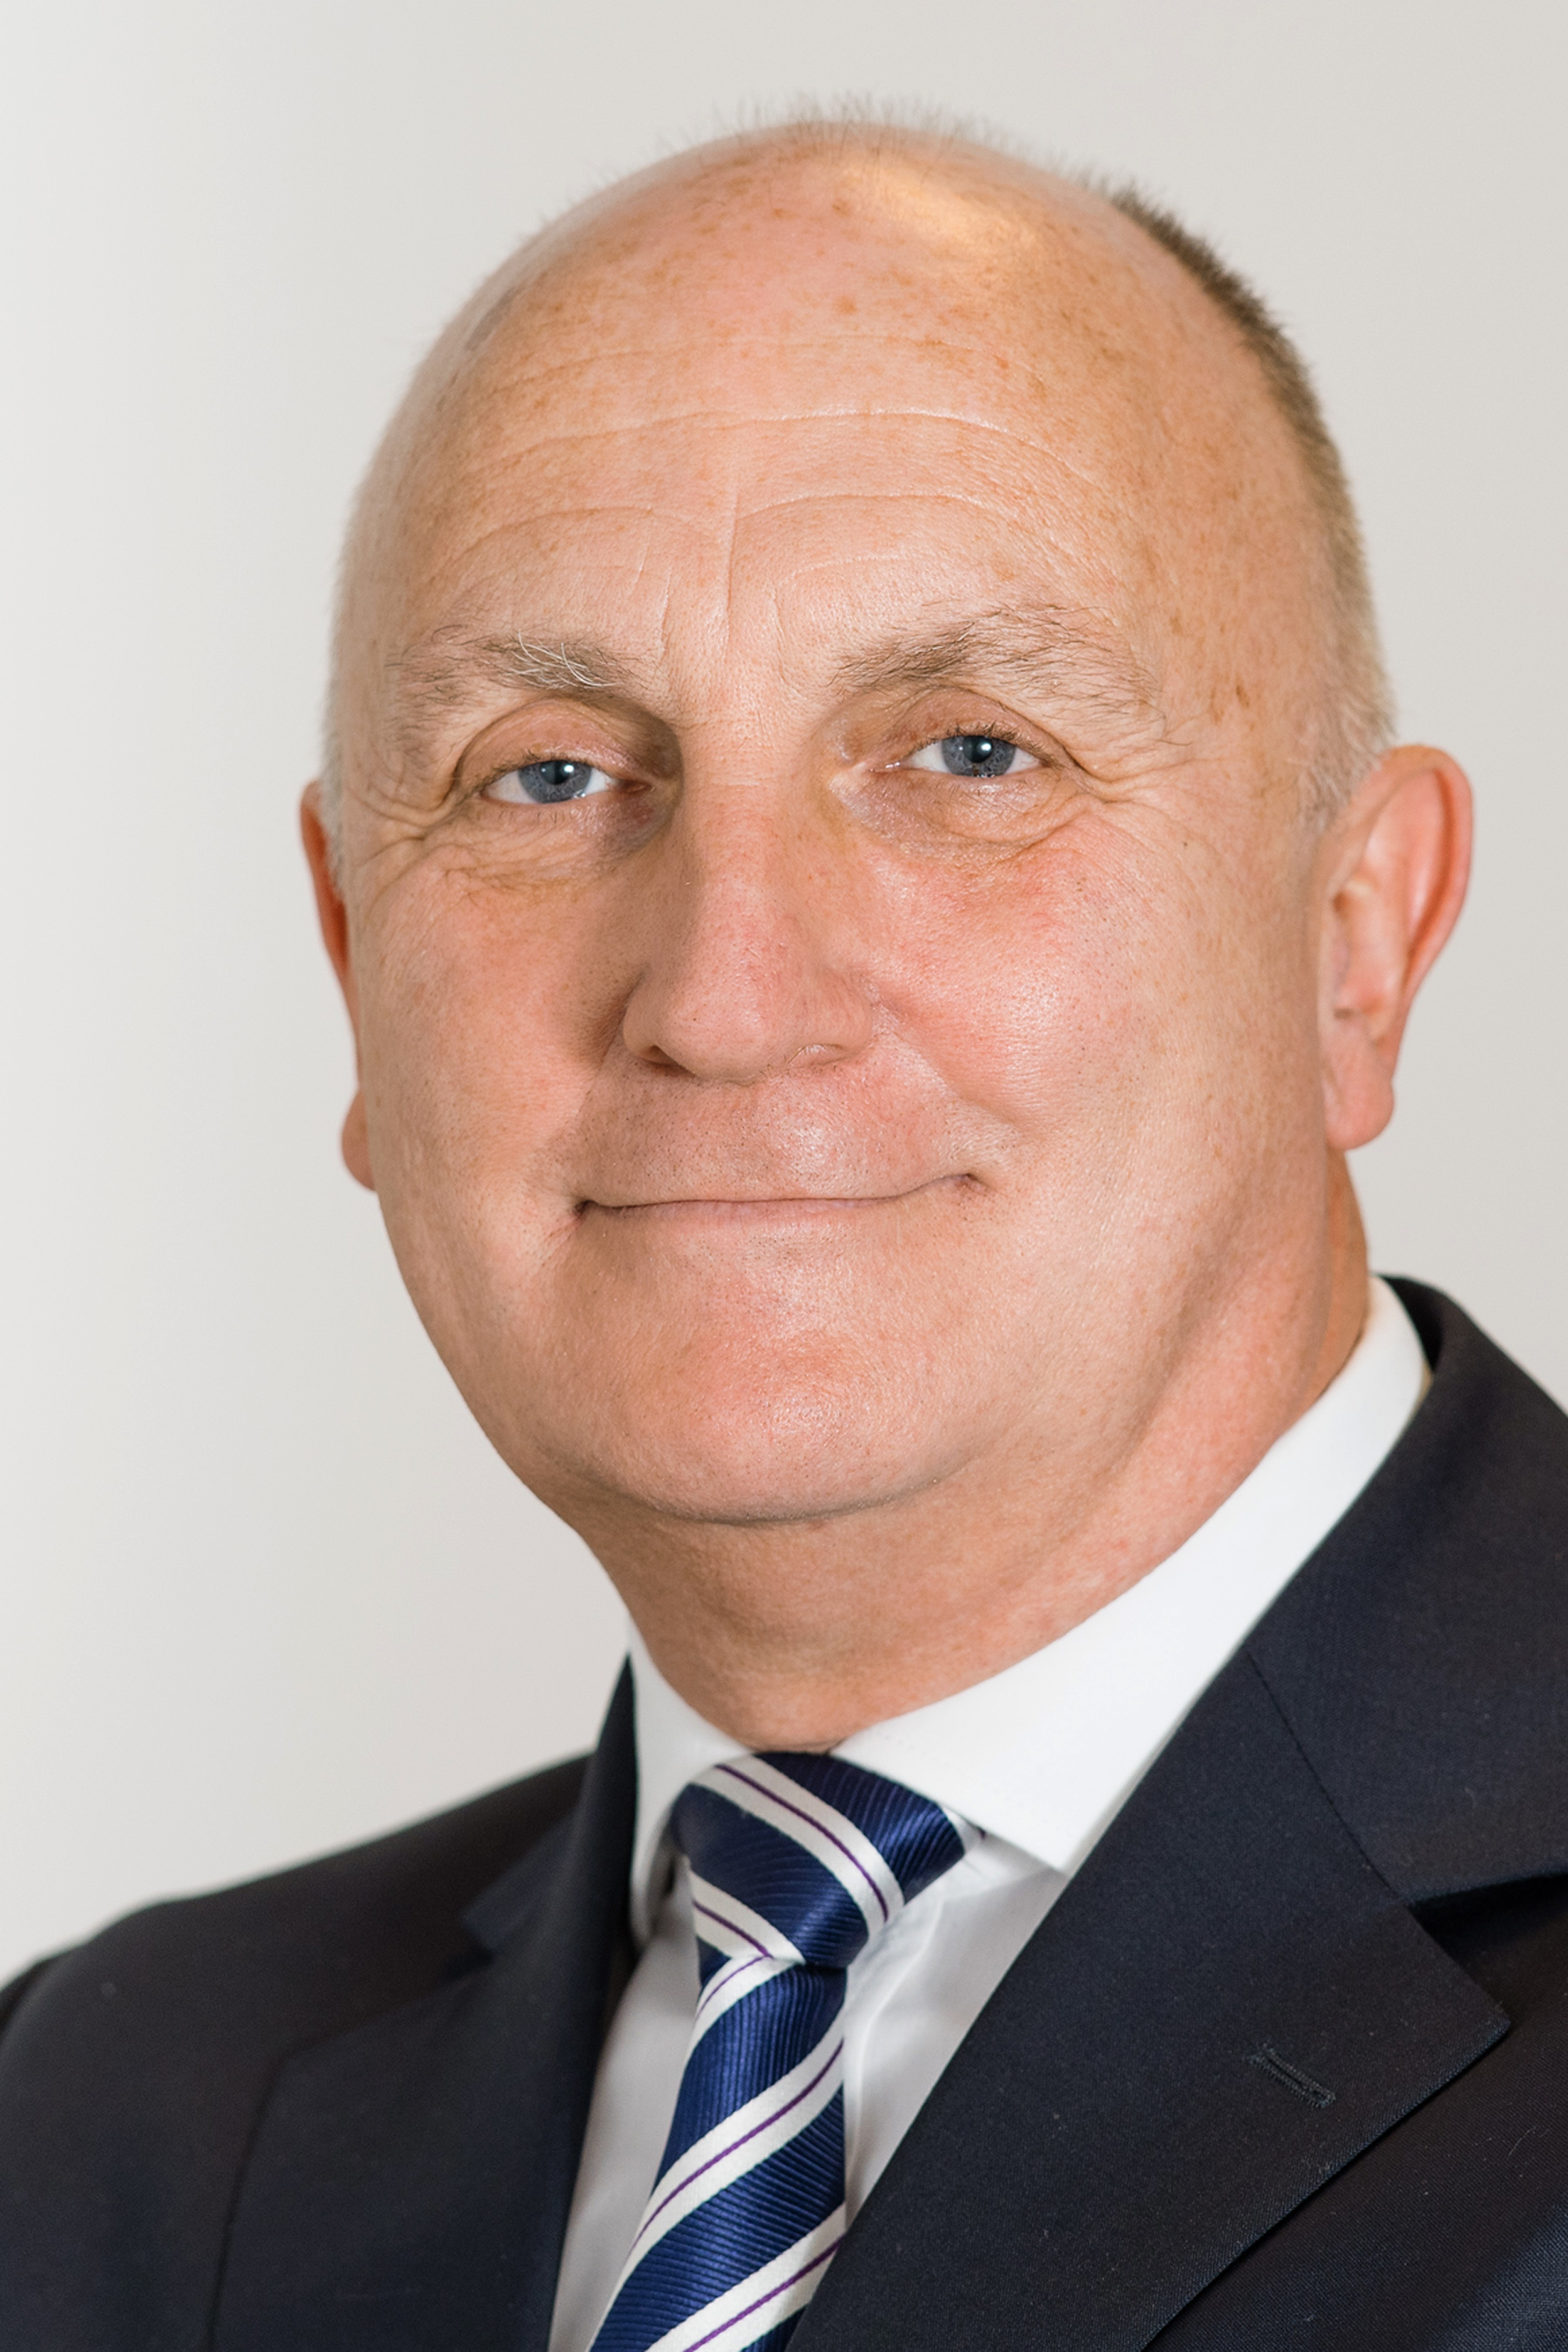 Stephen Phipson is expected to take up his role at EEF on 1 December, 2017.